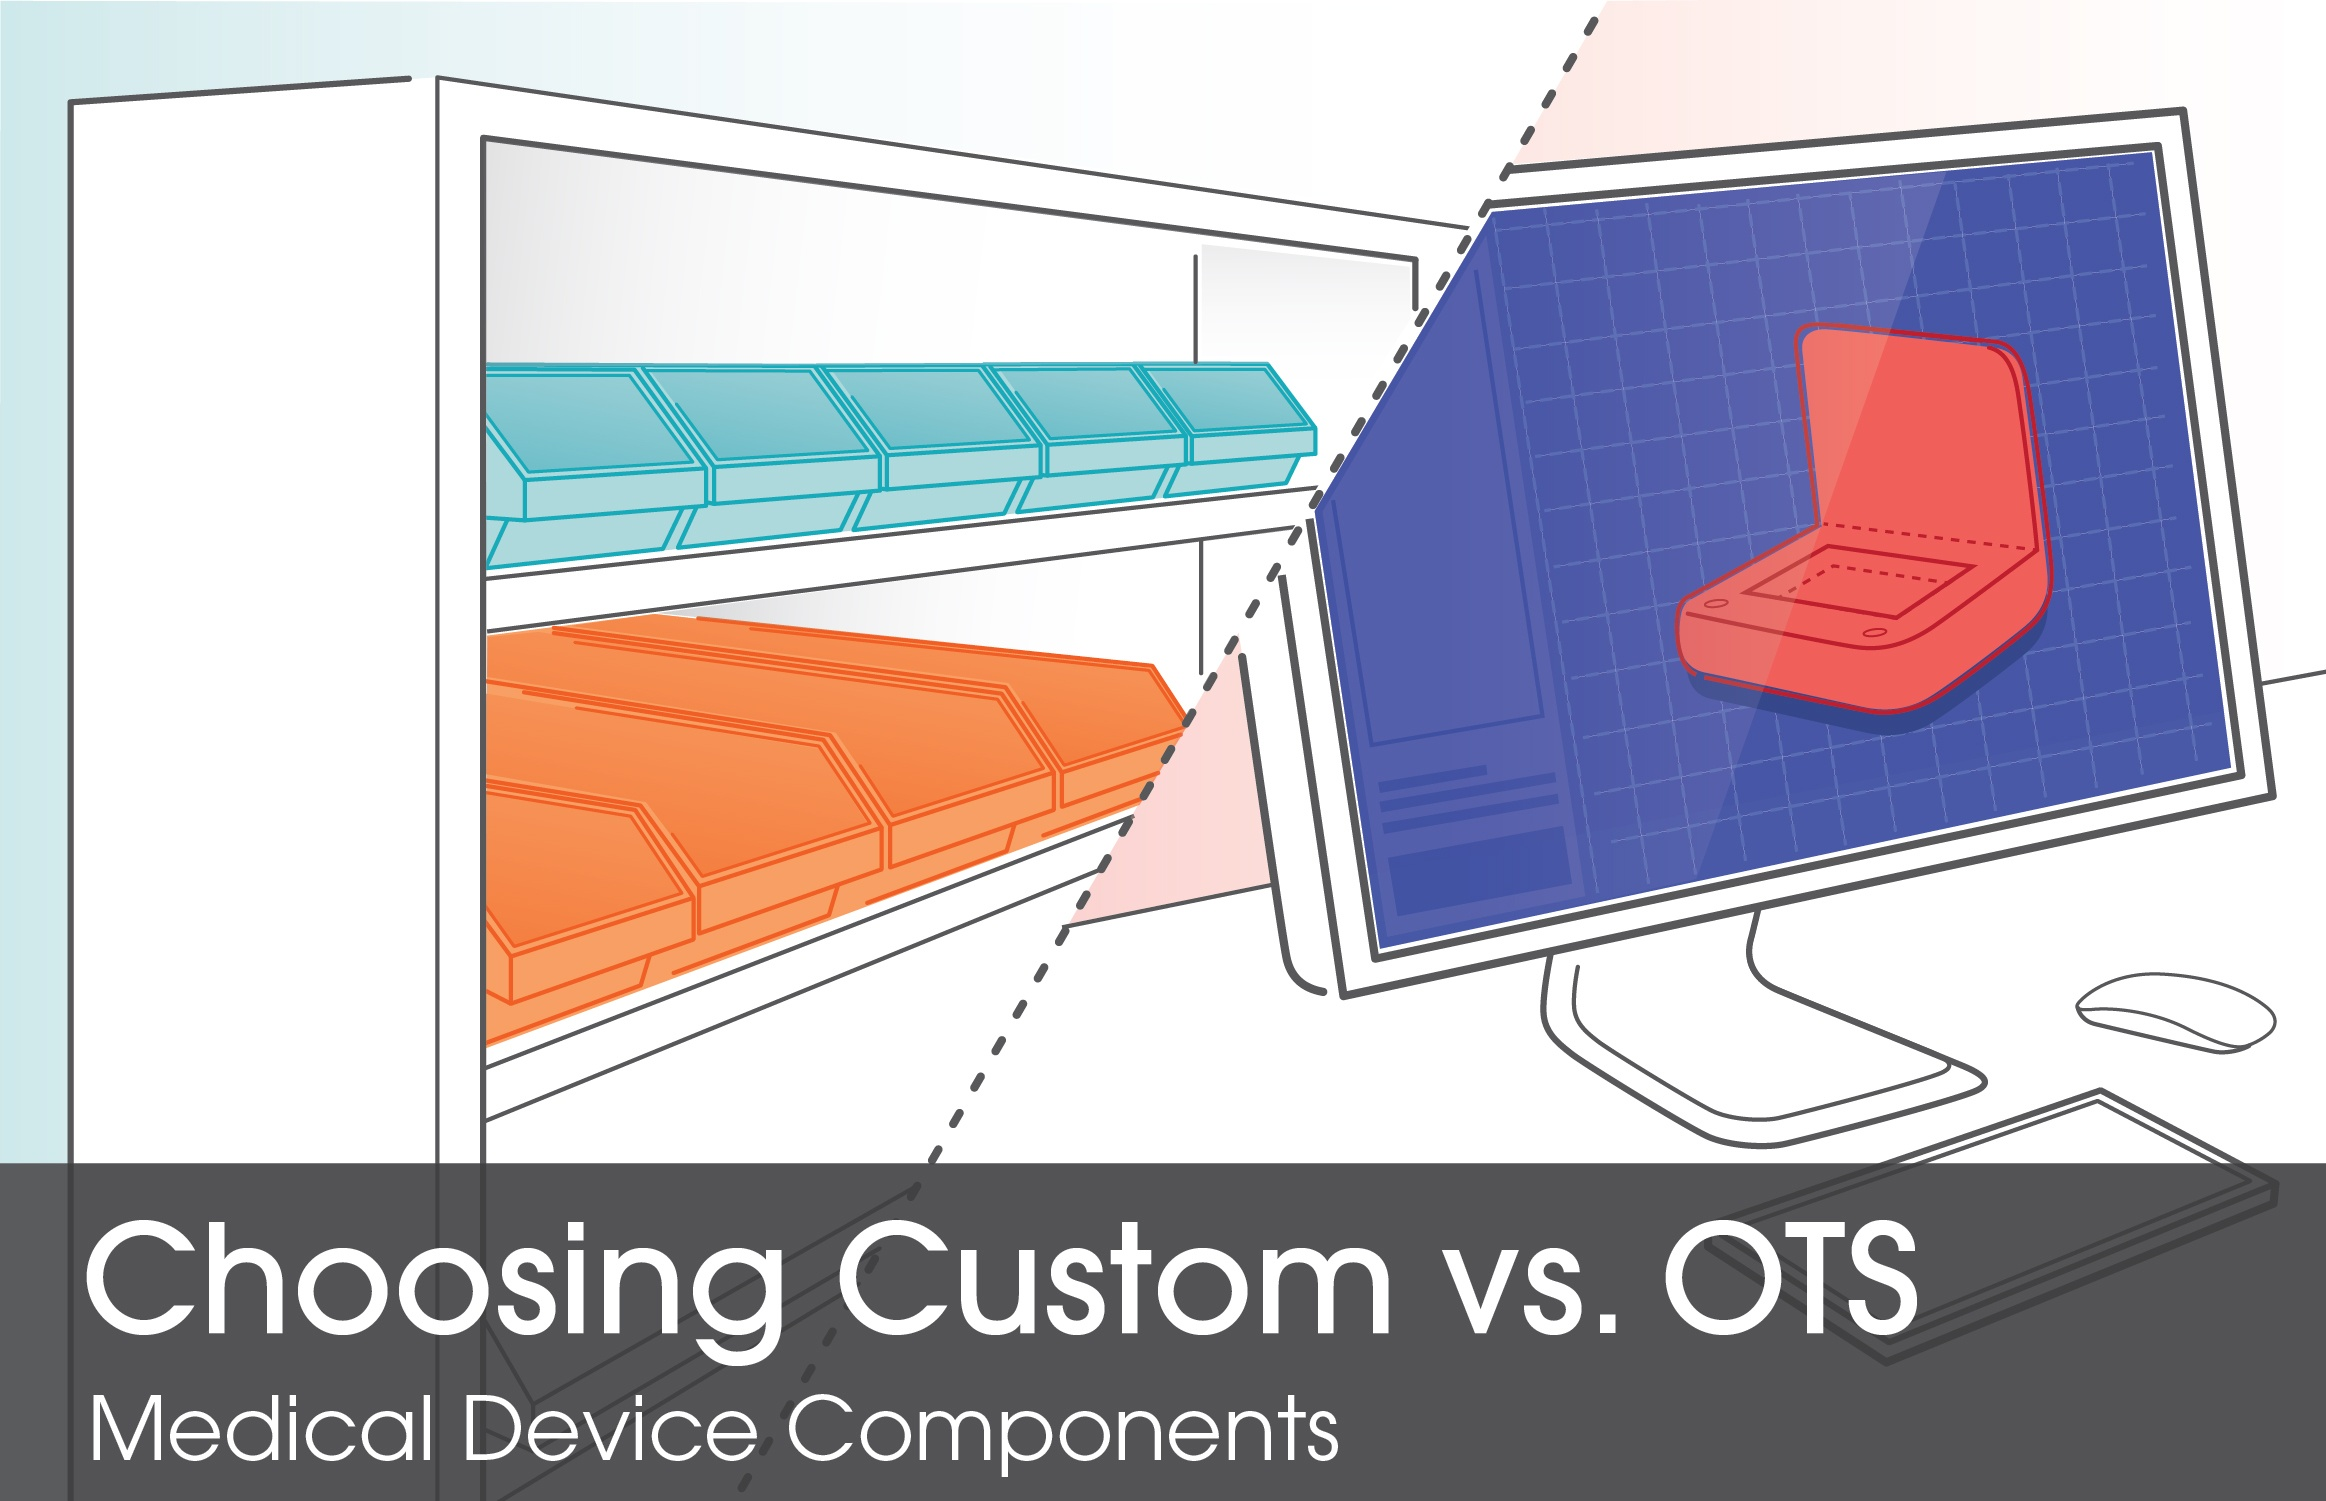 Choosing Custom vs. OTS Medical Device Components